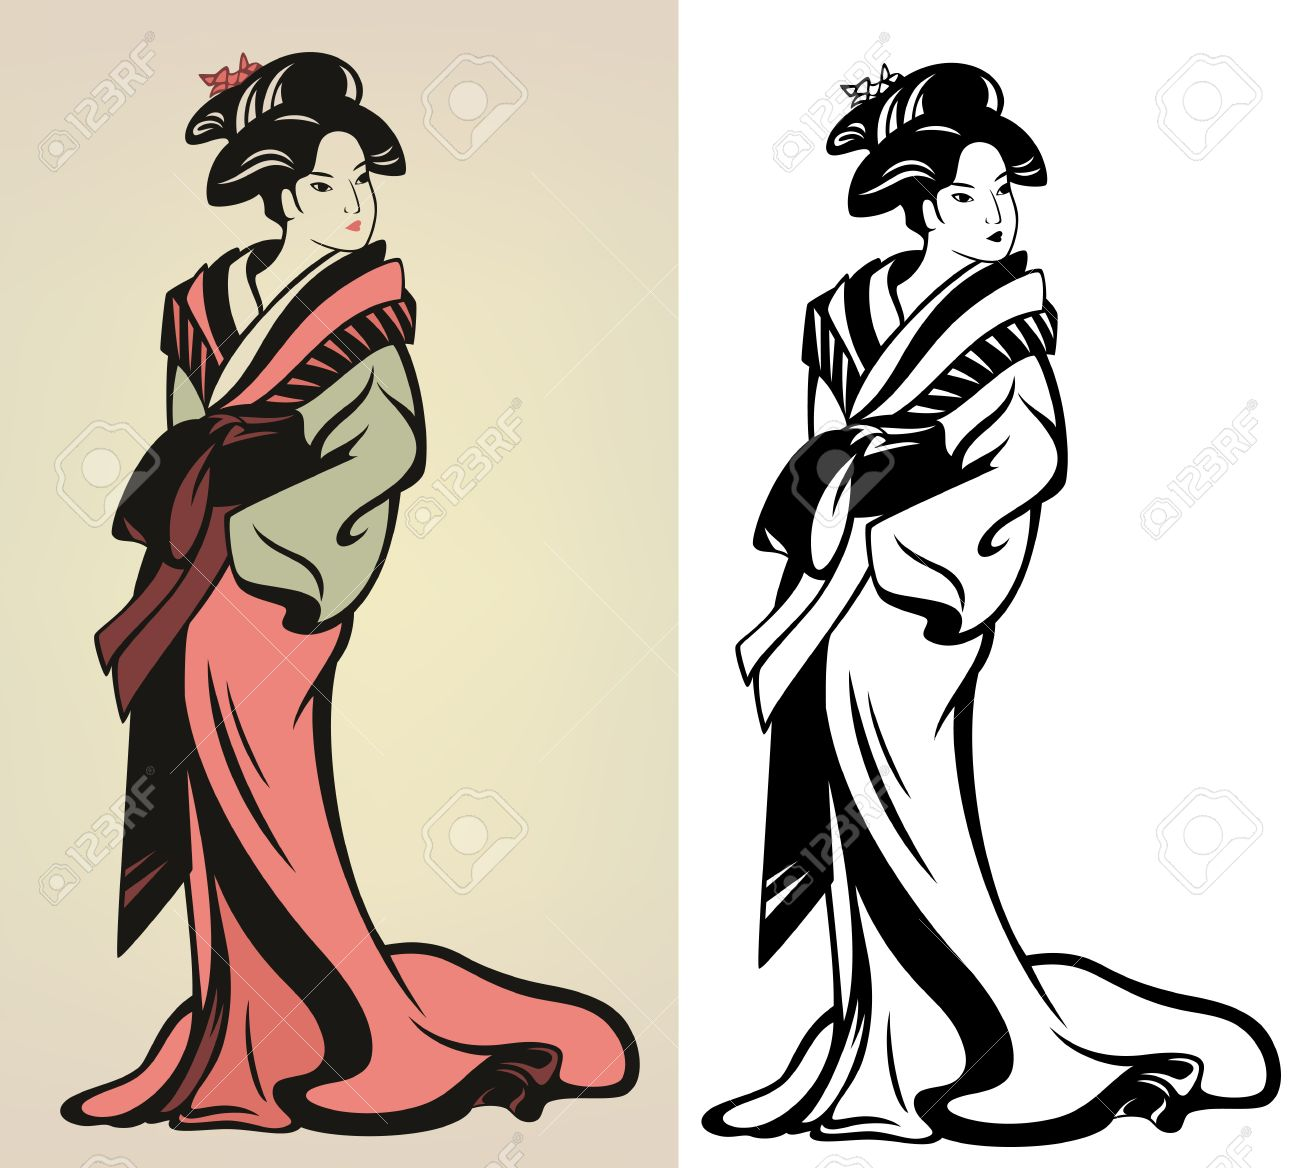 Color and art - Vector Traditional Japanese Geisha Illustration In Color And Monochrome